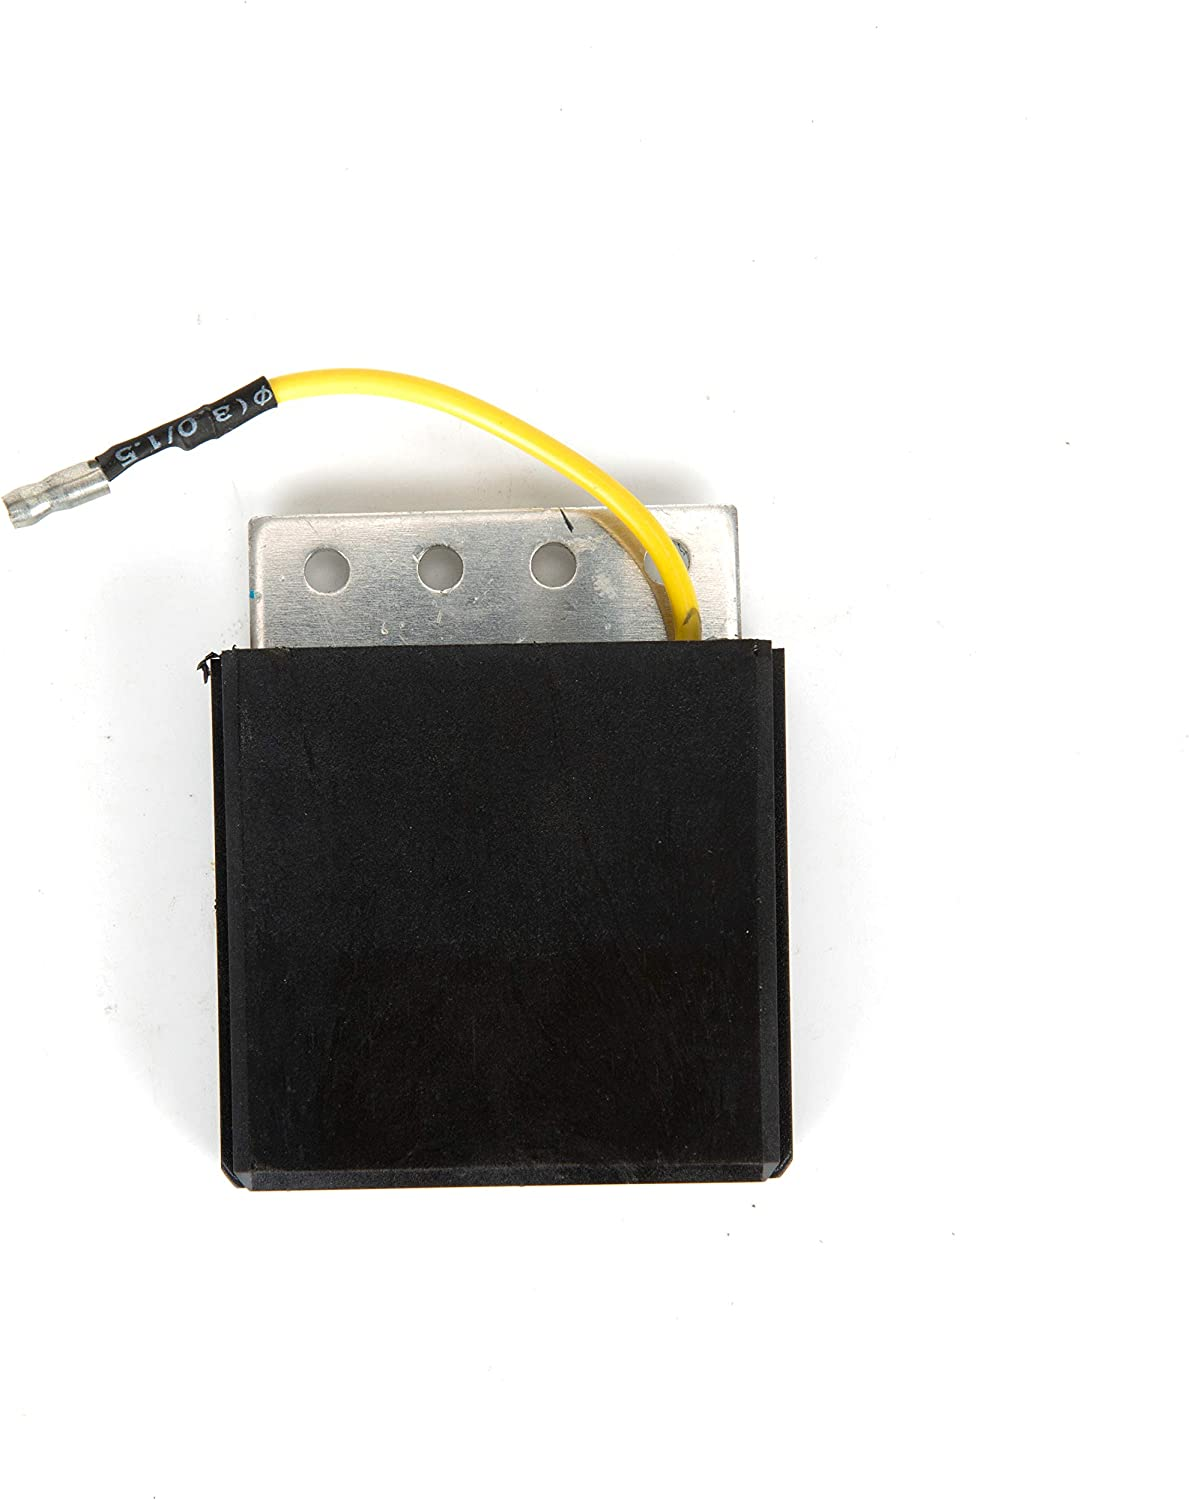 Animer and price revision Voltage Regulator Rectifier for 340 Polaris Max 62% OFF 40 1990-2003